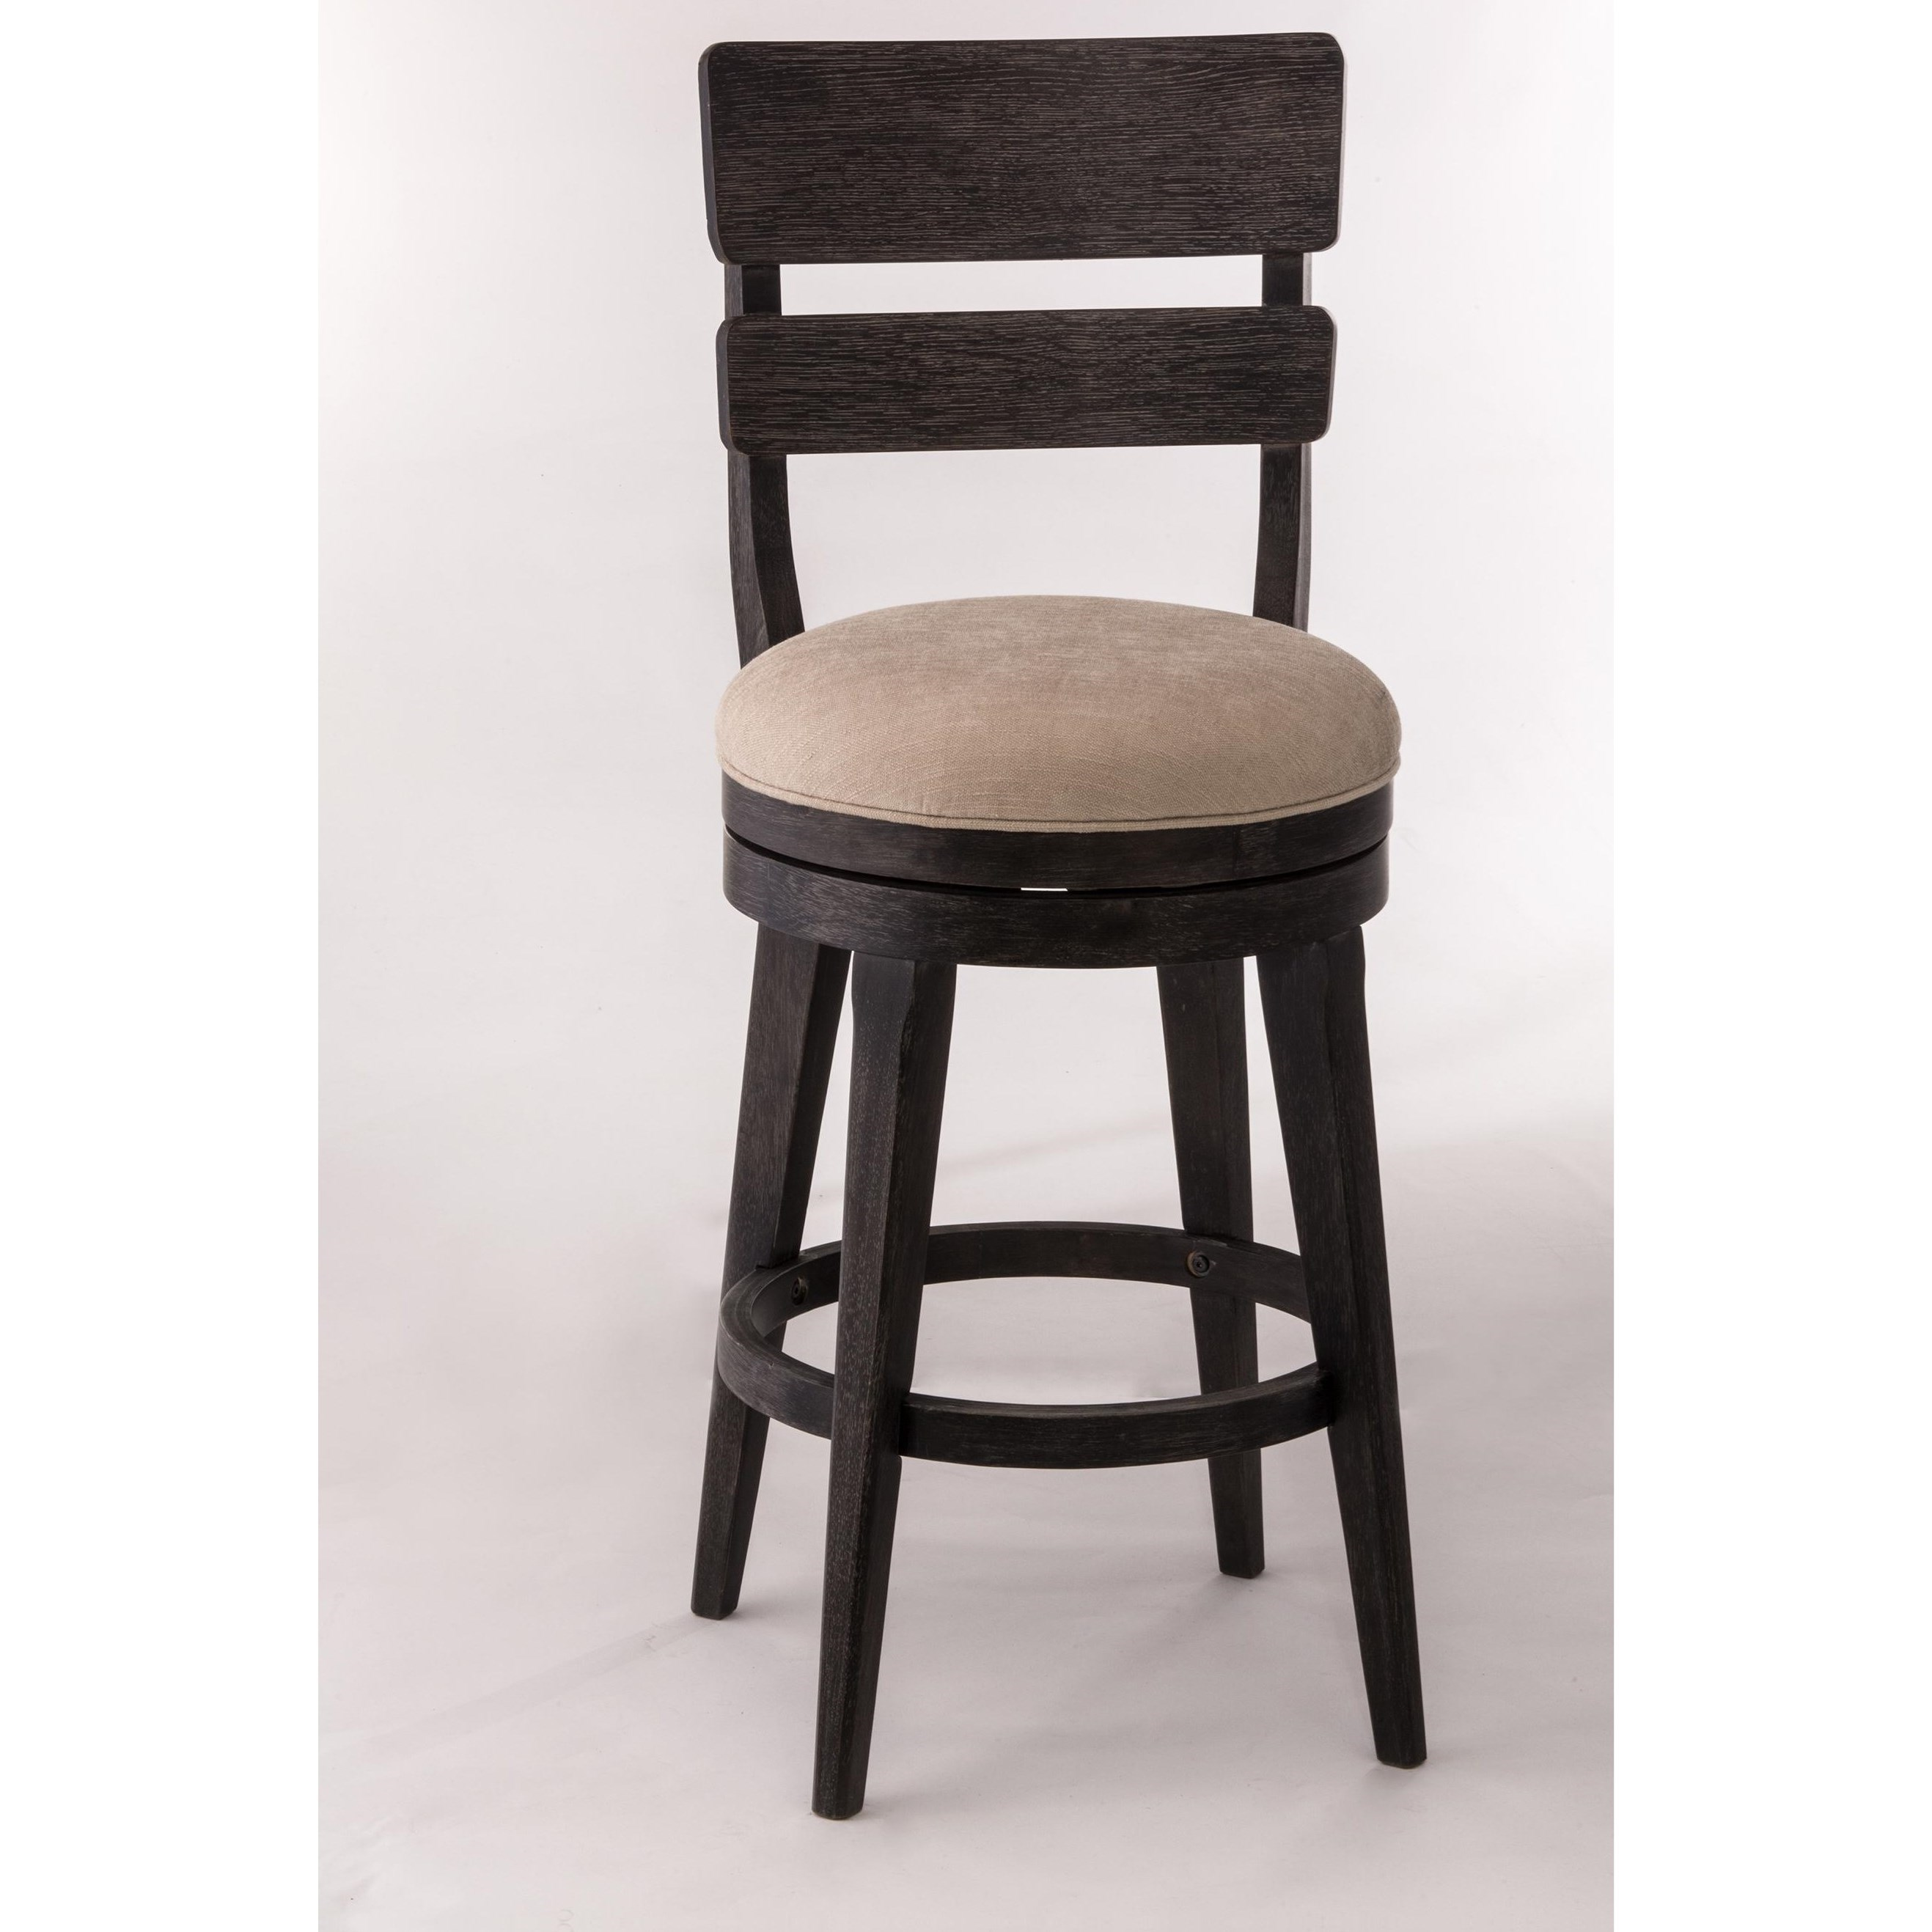 Modern Wood Counter Stool Hillsdale Wood Stools Upholstered Swivel Counter Stool